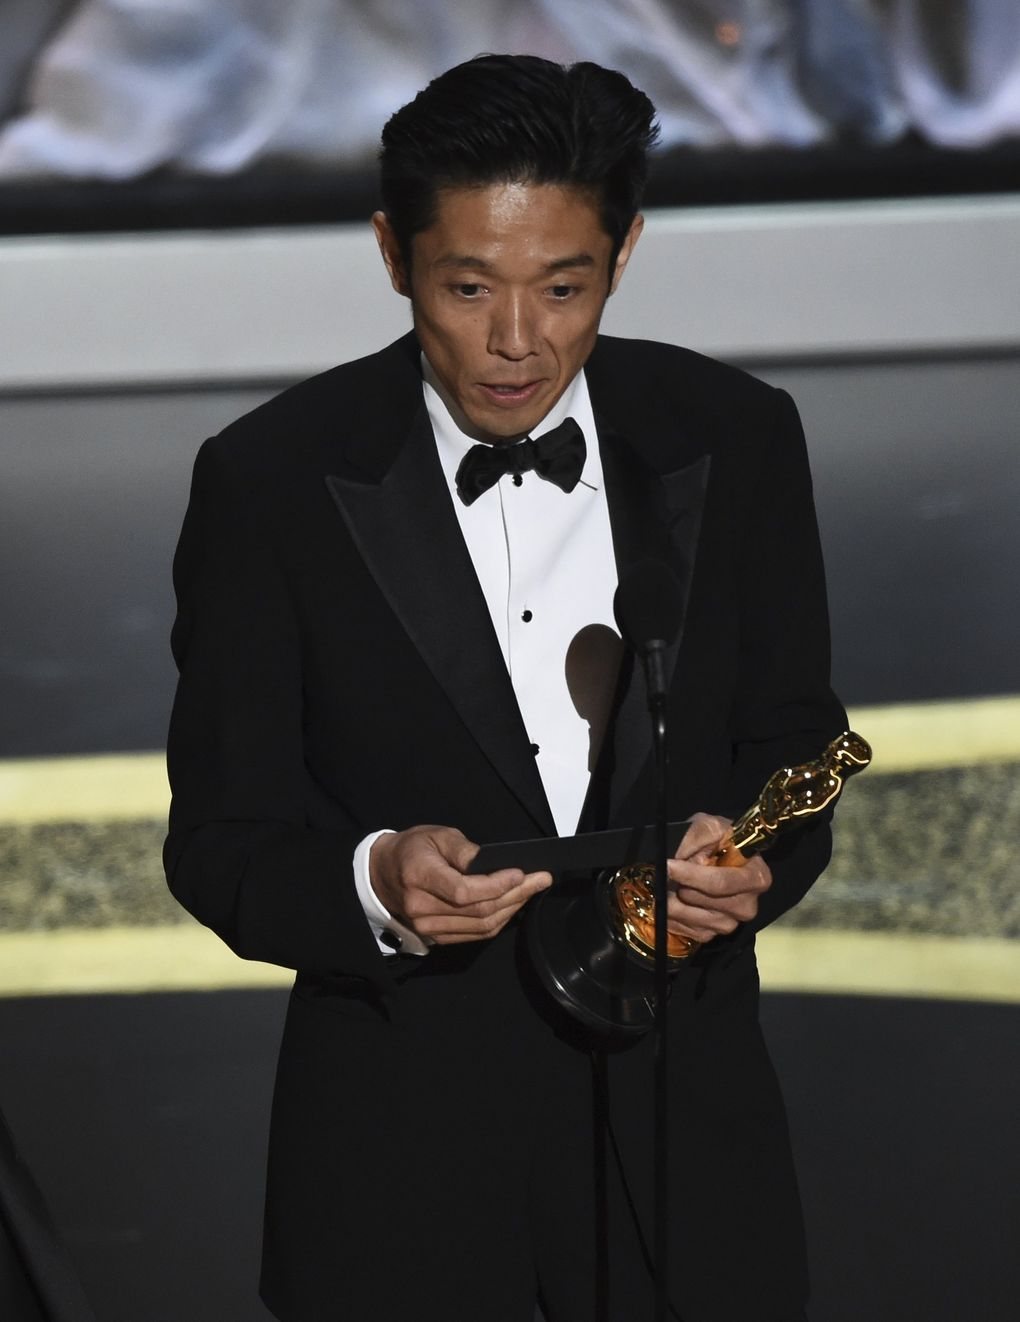 """Kazu Hiro accepts the award for best makeup and hairstyling for """"Bombshell"""" at the Oscars on Sunday, Feb. 9, 2020, at the Dolby Theatre in Los Angeles. (AP Photo/Chris Pizzello) CADC346 CADC346 (Chris Pizzello / Chris Pizzello/Invision/AP)"""